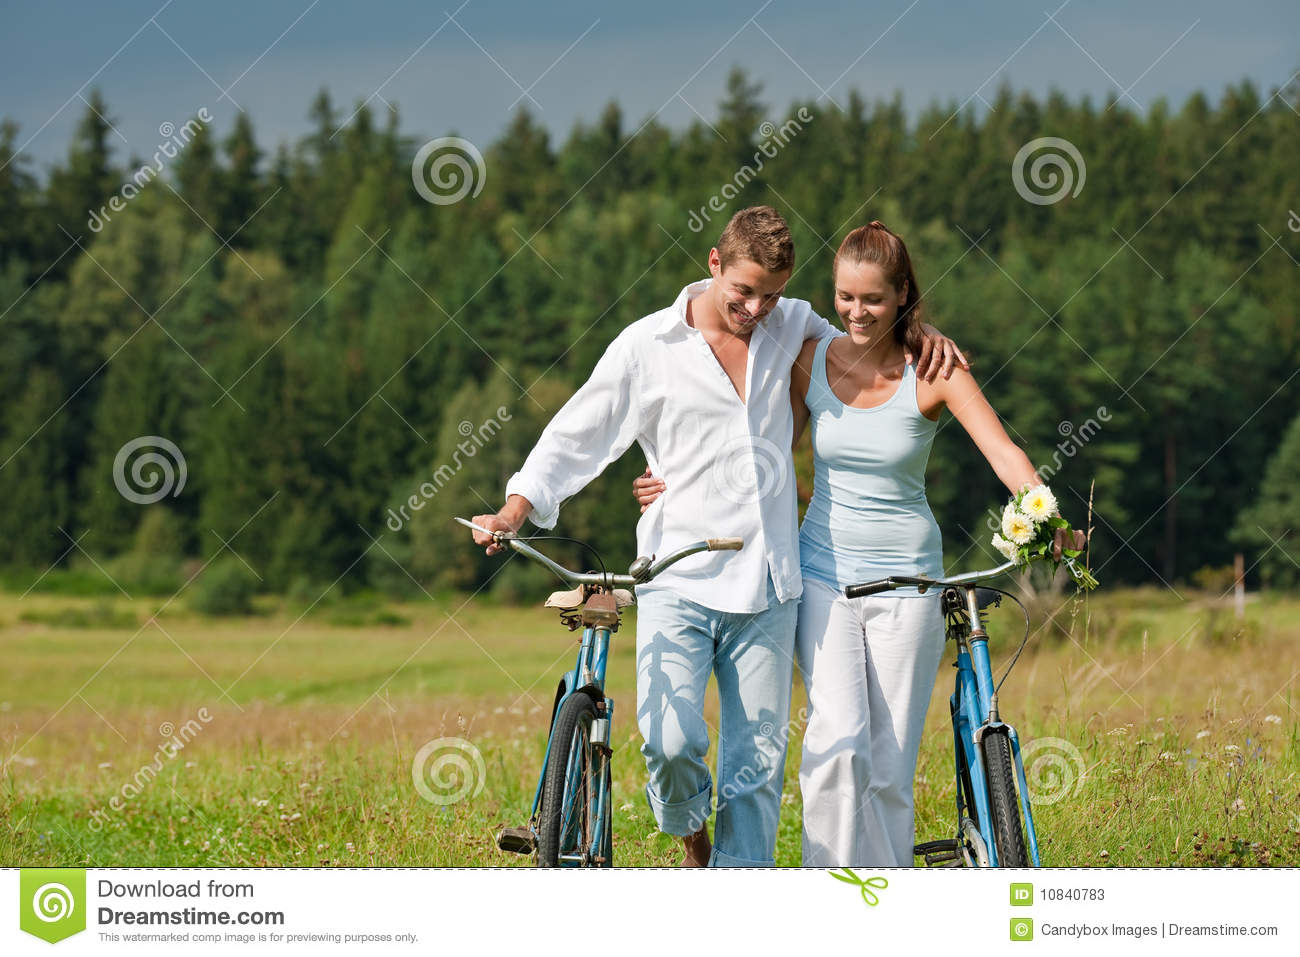 Summer - Romantic Couple With Bike In Meadow Stock Photos ...